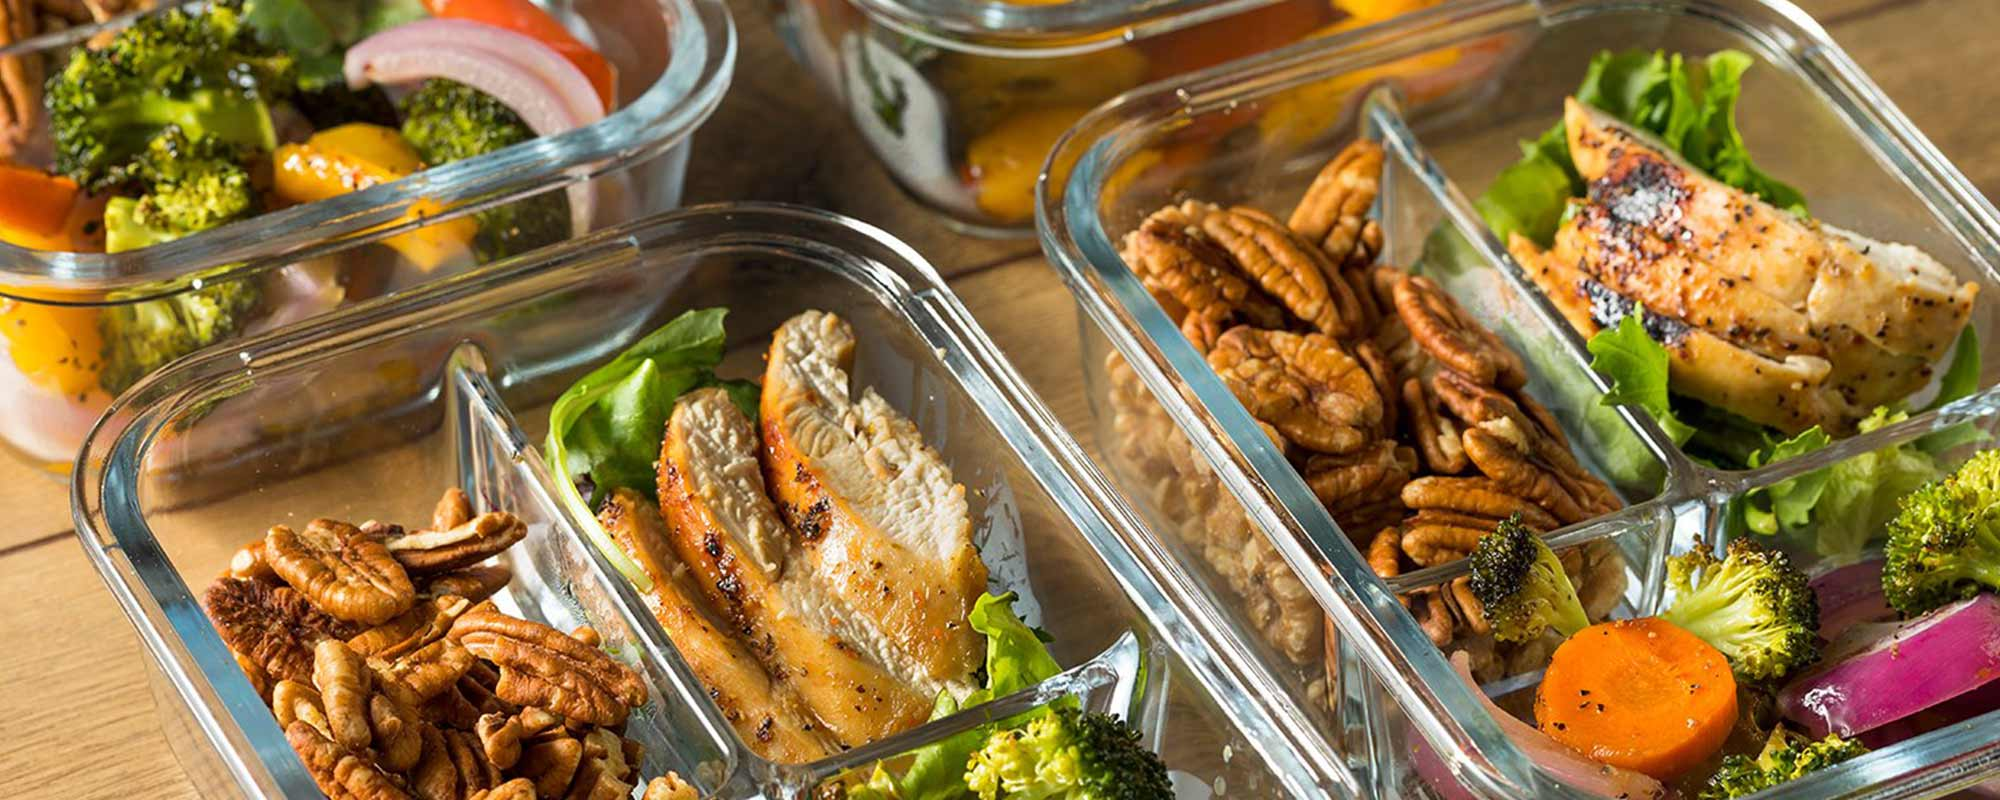 Tips to Make Meal Planning Easier